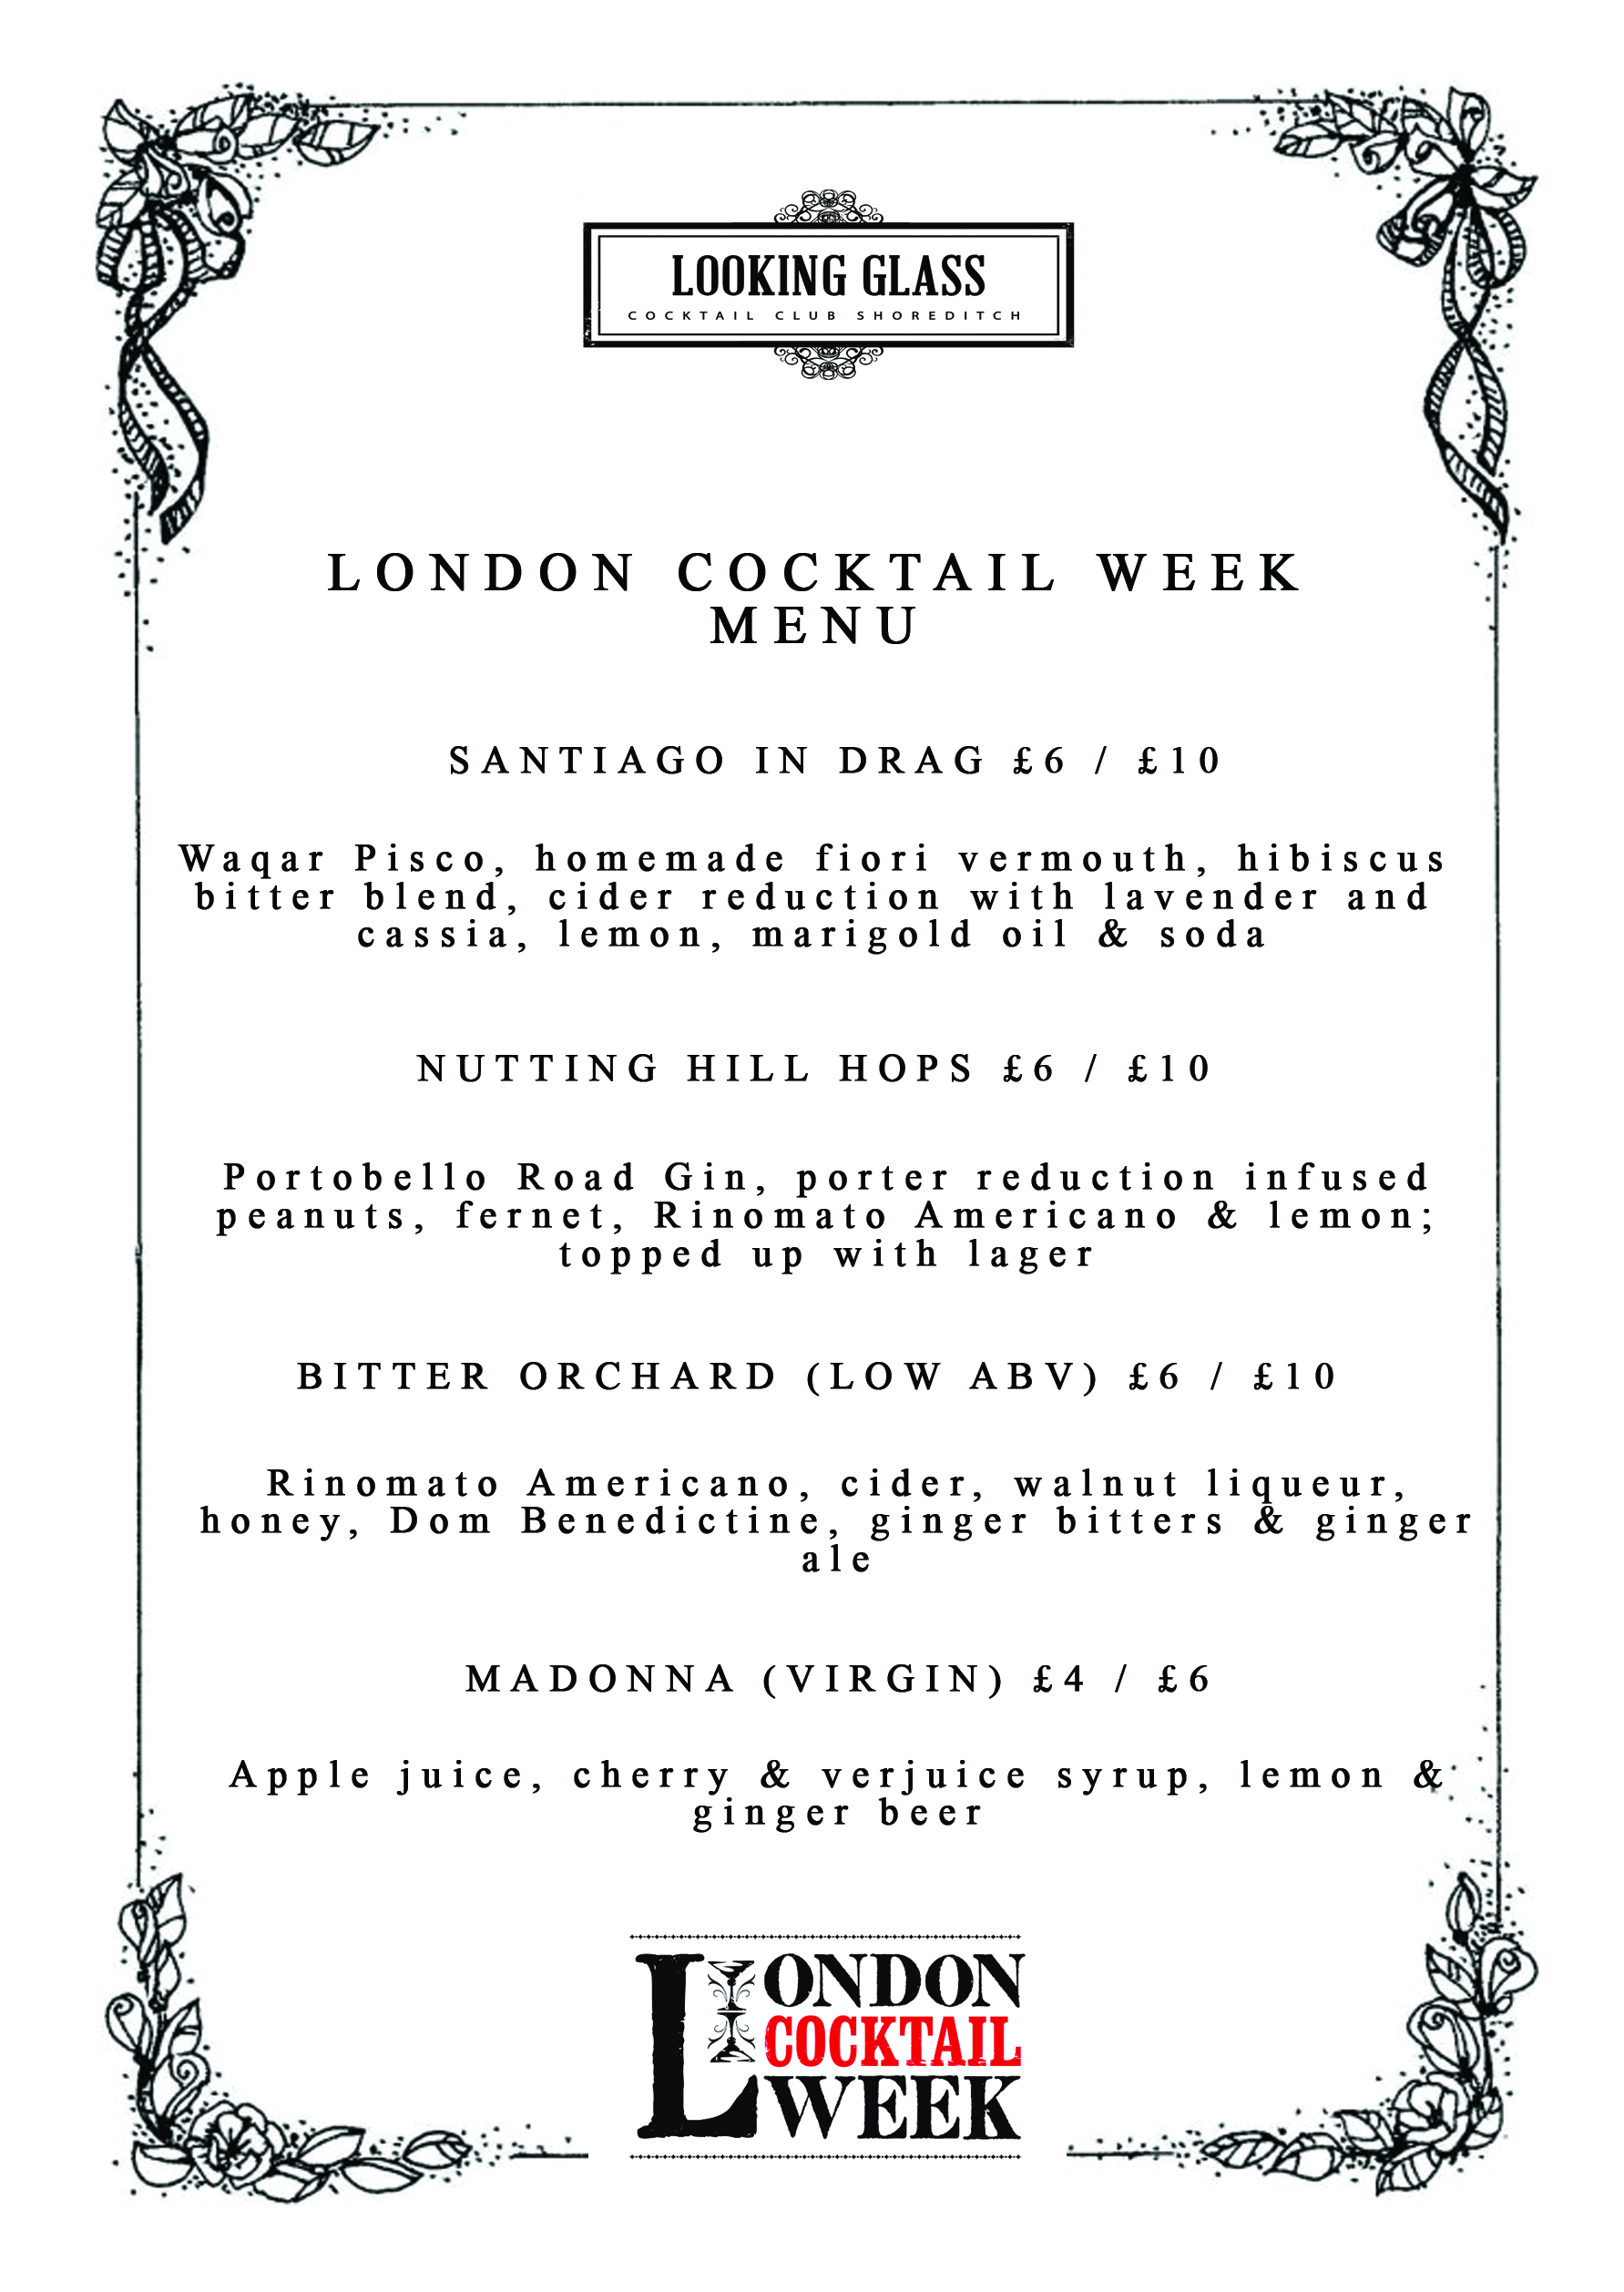 London Cocktail Week Menu Looking Glass 2018.jpg